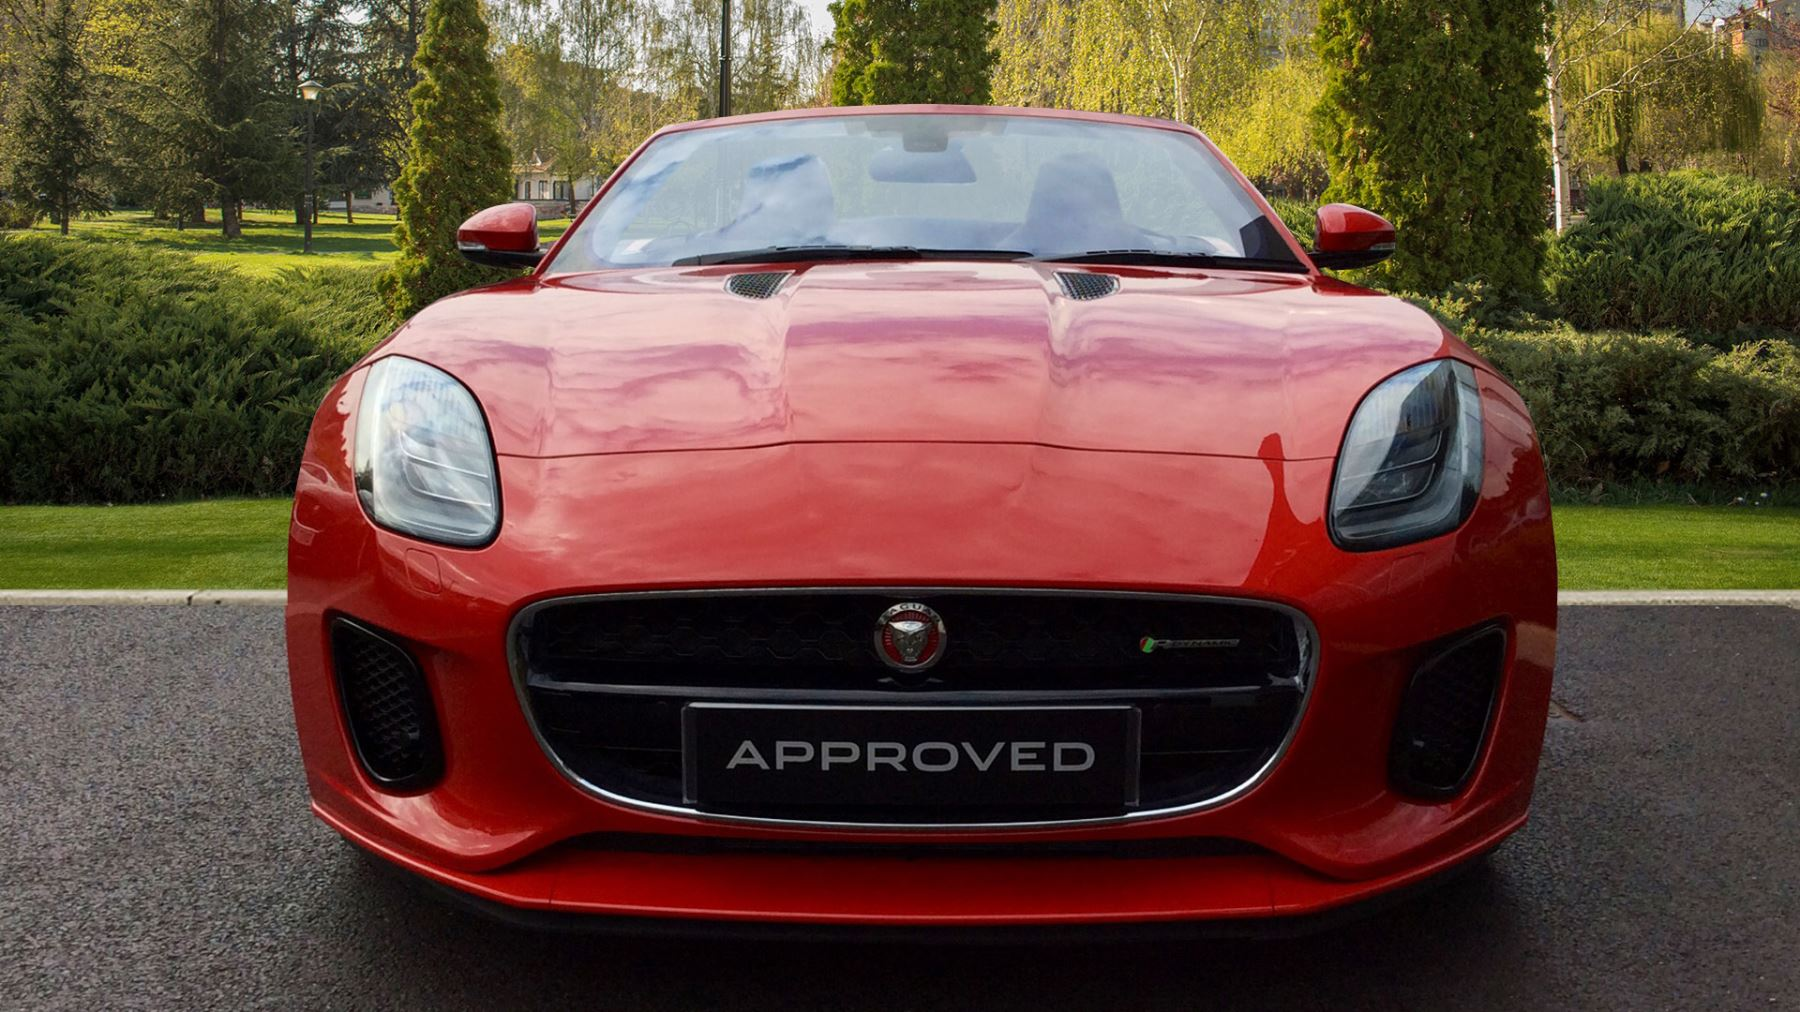 Jaguar F-TYPE 3.0 [380] Supercharged V6 R-Dynamic 2dr image 7